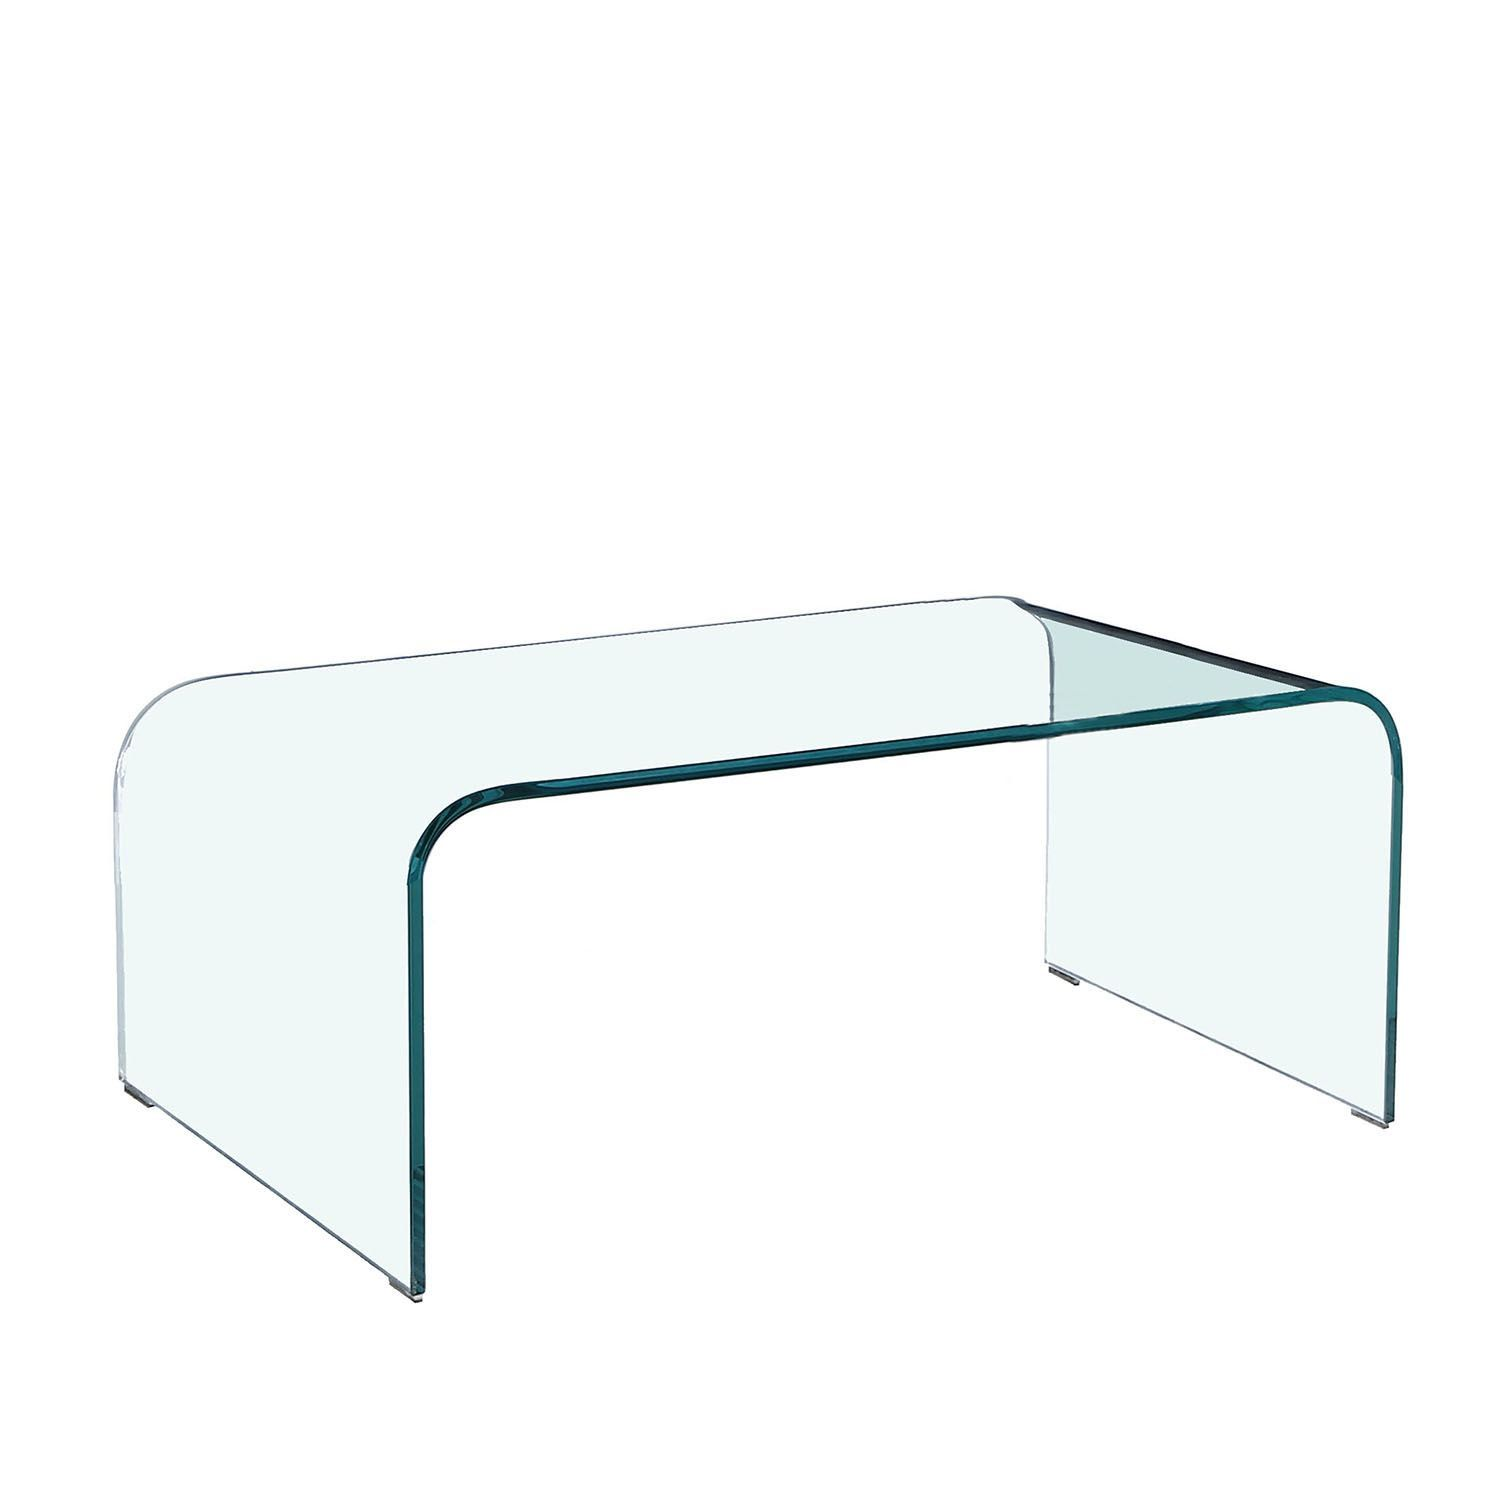 Awe Inspiring Side Or Coffee Table Modern And Elegant Made Of 12 Mm Beatyapartments Chair Design Images Beatyapartmentscom